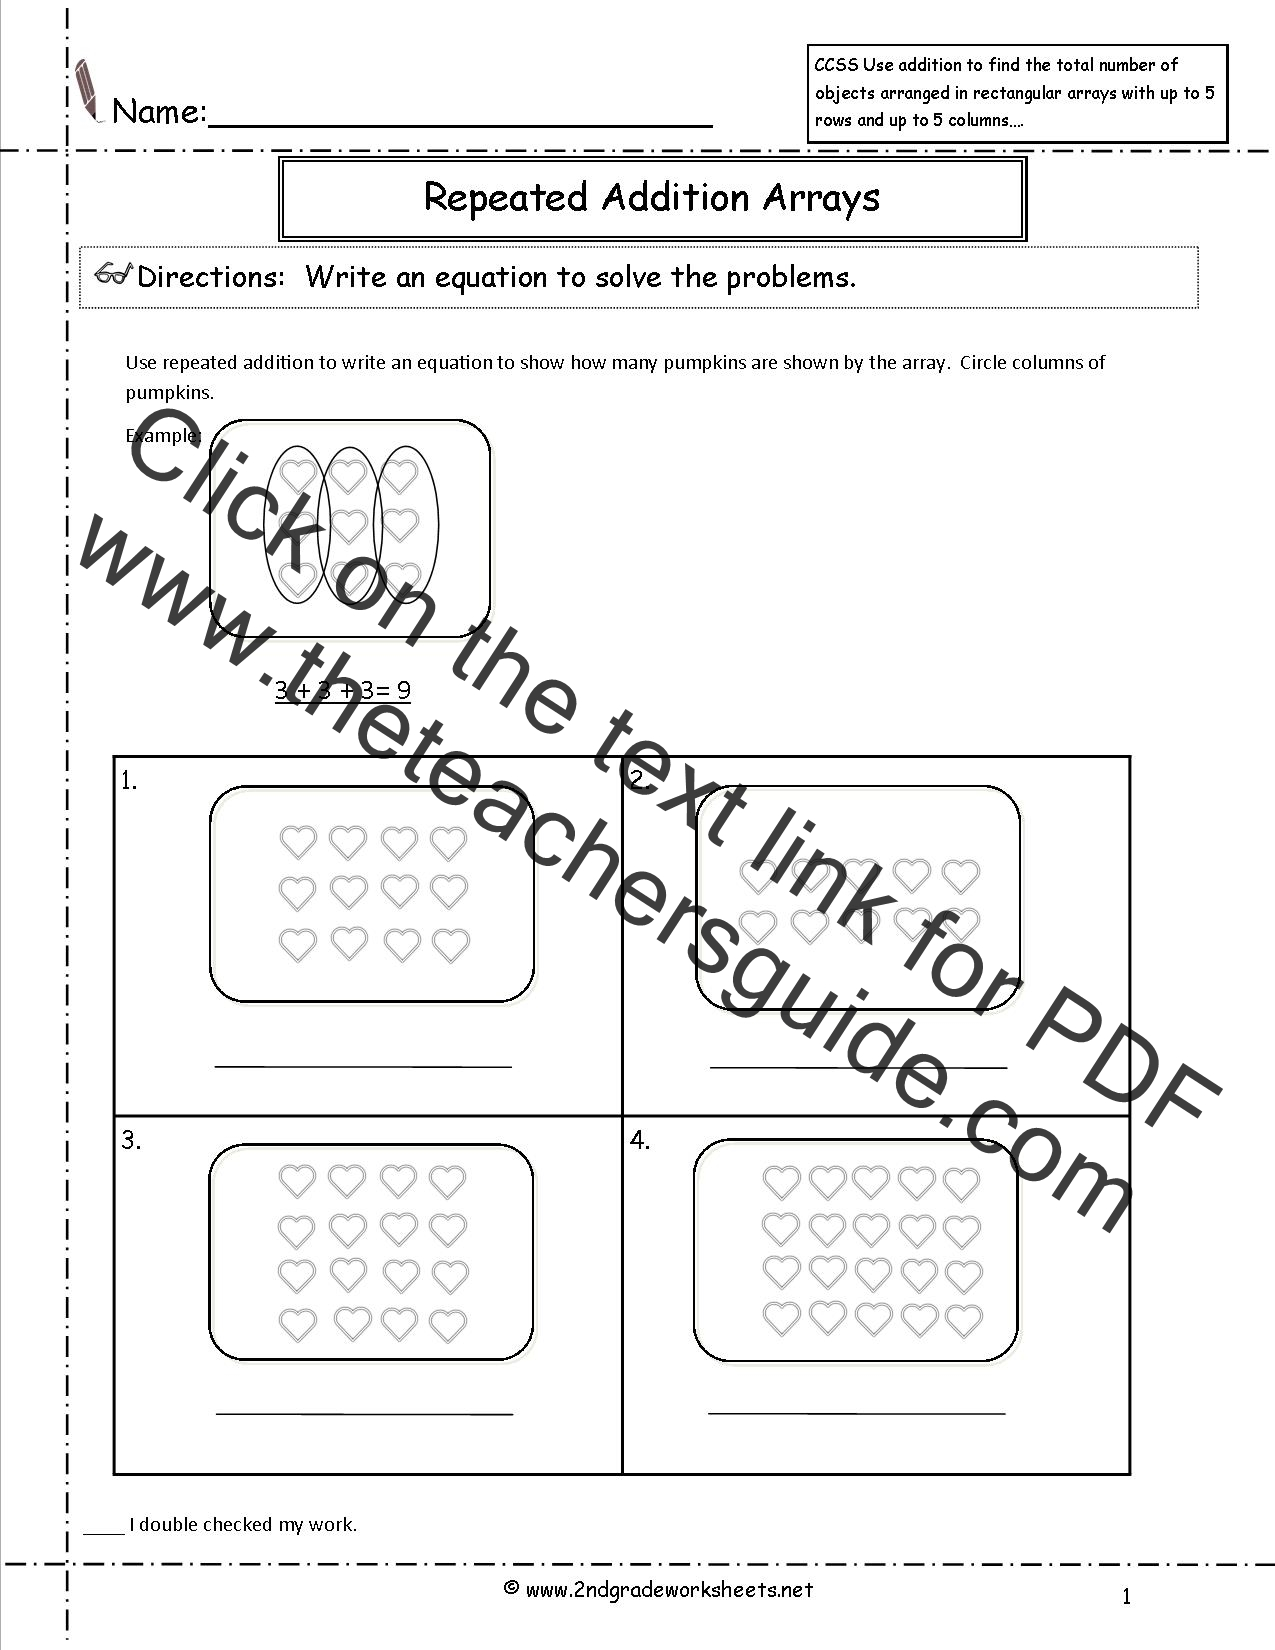 CCSS 2OA4 Worksheets – Repeated Addition Worksheet